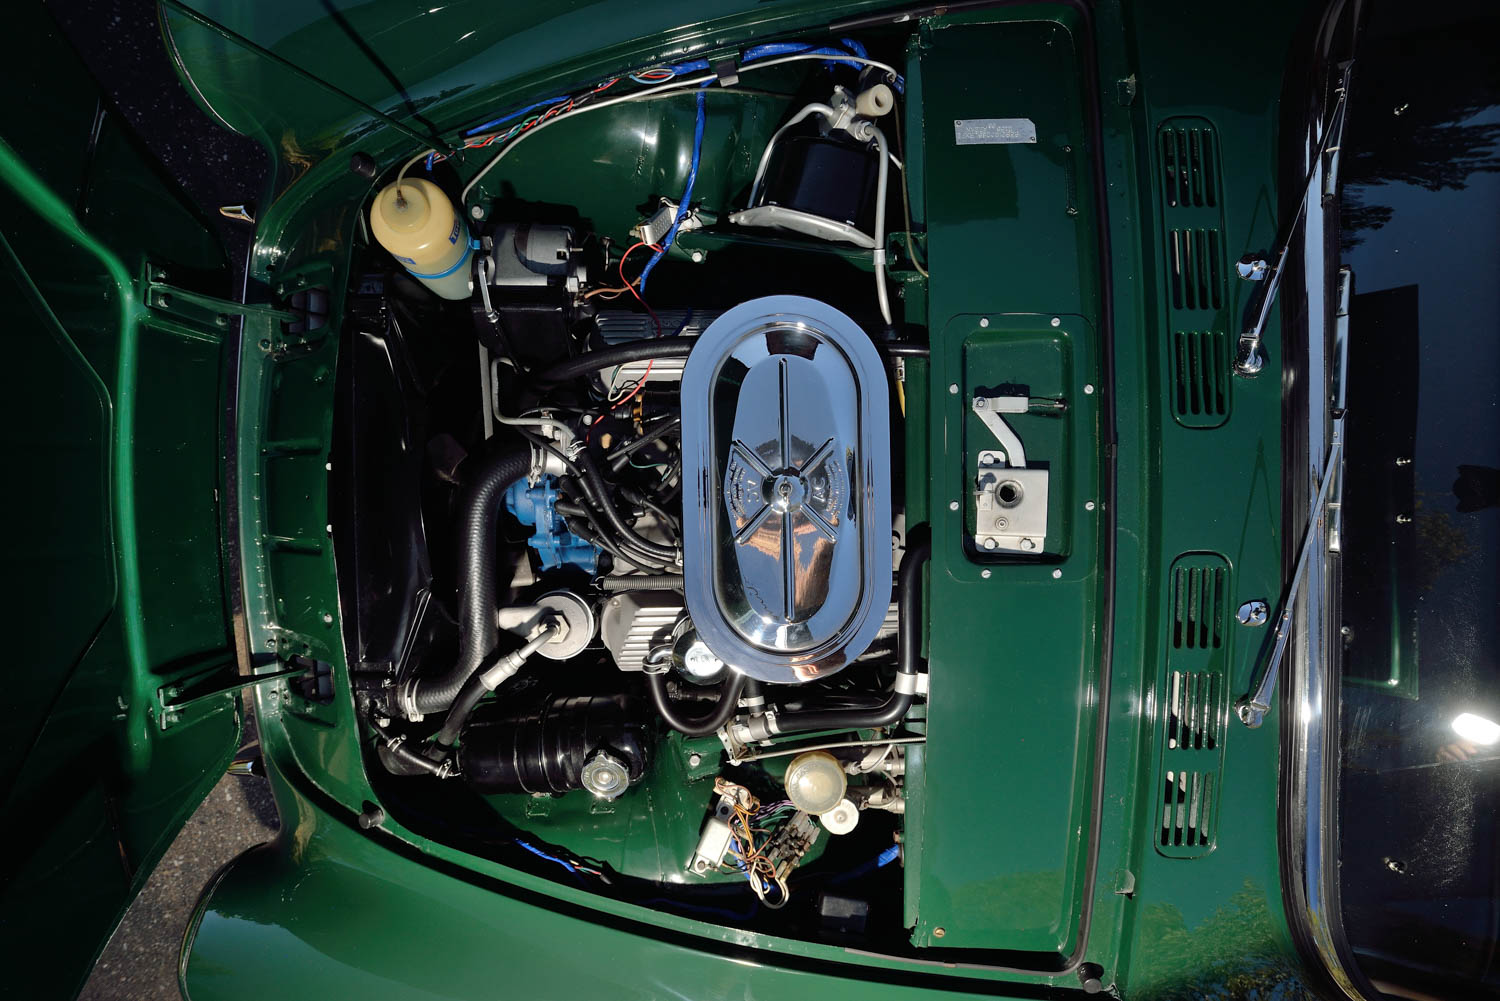 1967 Sunbeam Tiger MKII engine